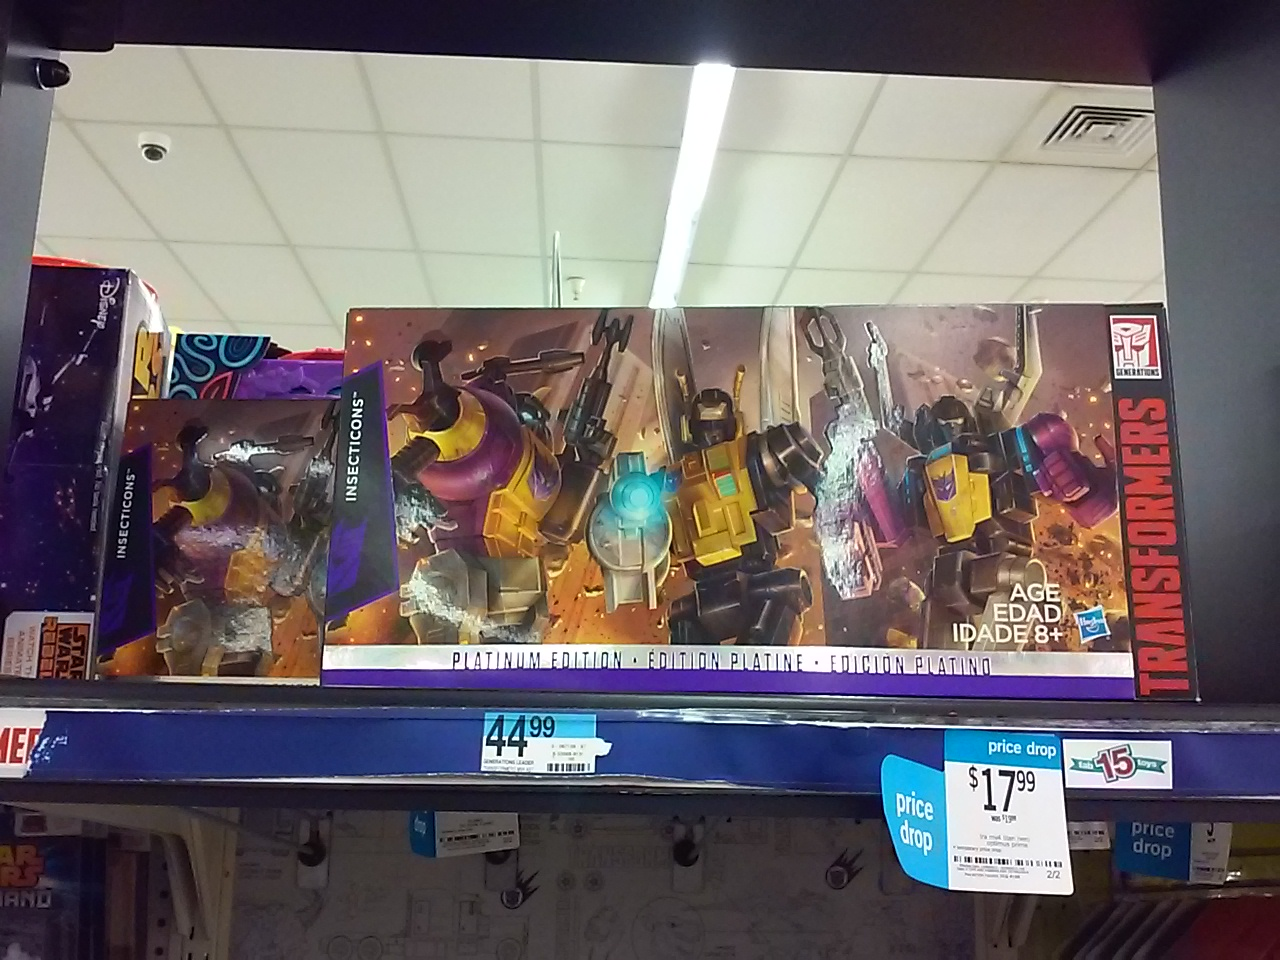 27489981d1420949292-insecticons-platinum-edition-20150110_174644